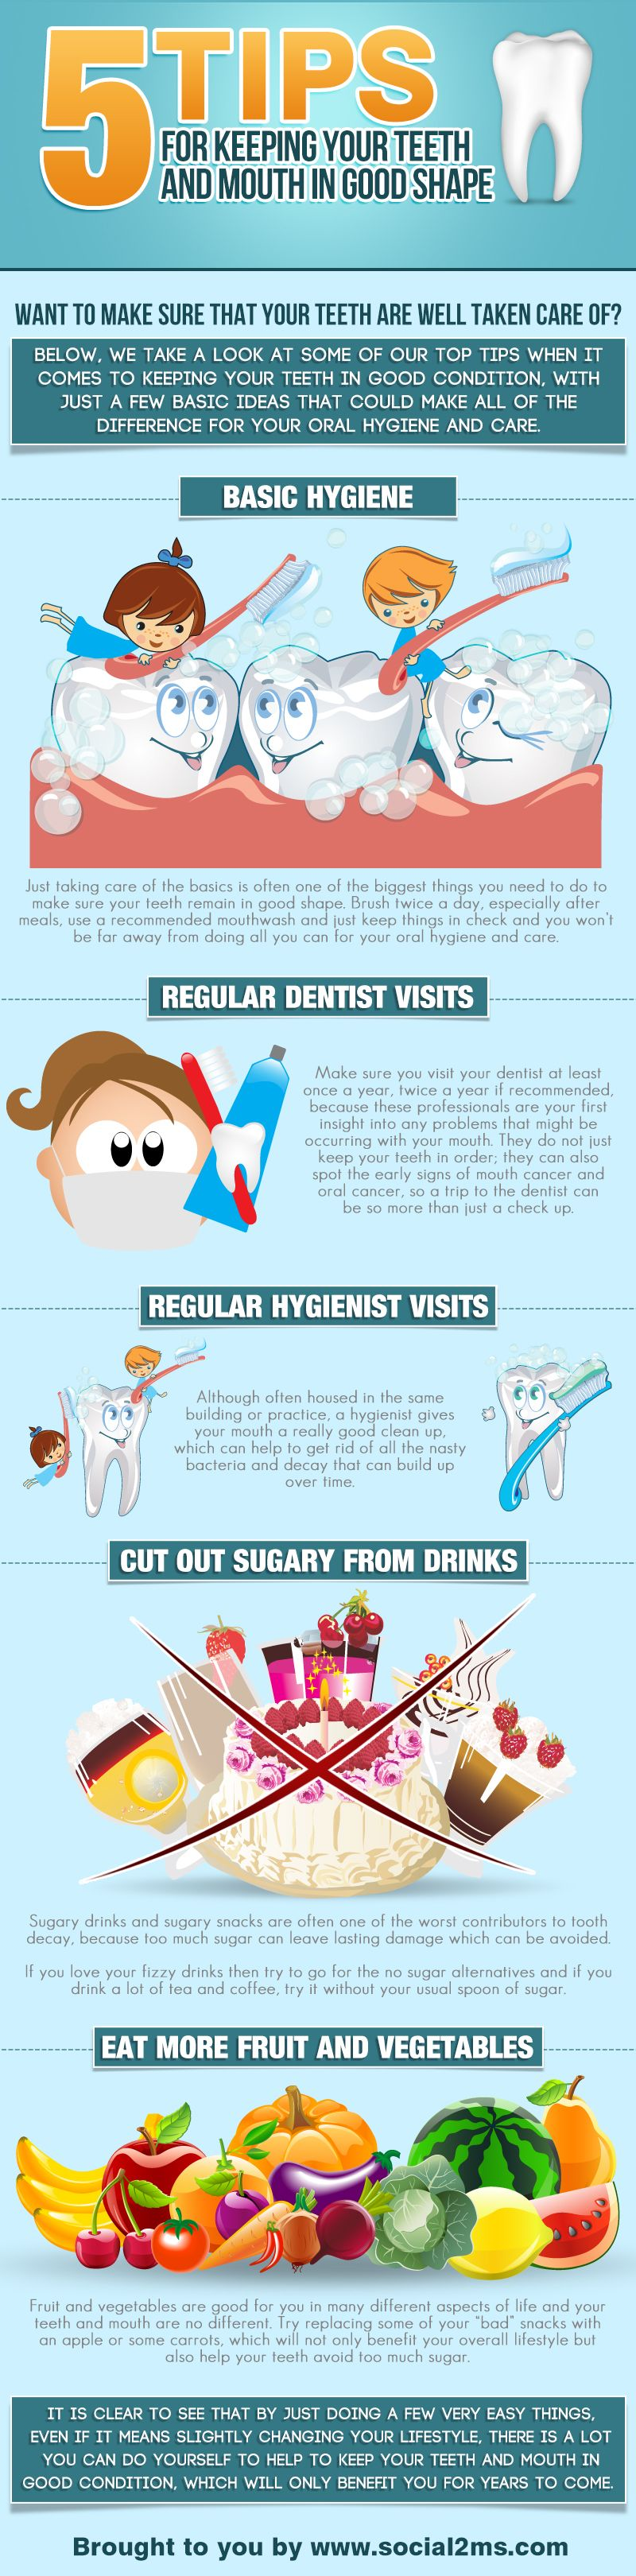 5 Tips for keeping your teeth and mouth in good shape.